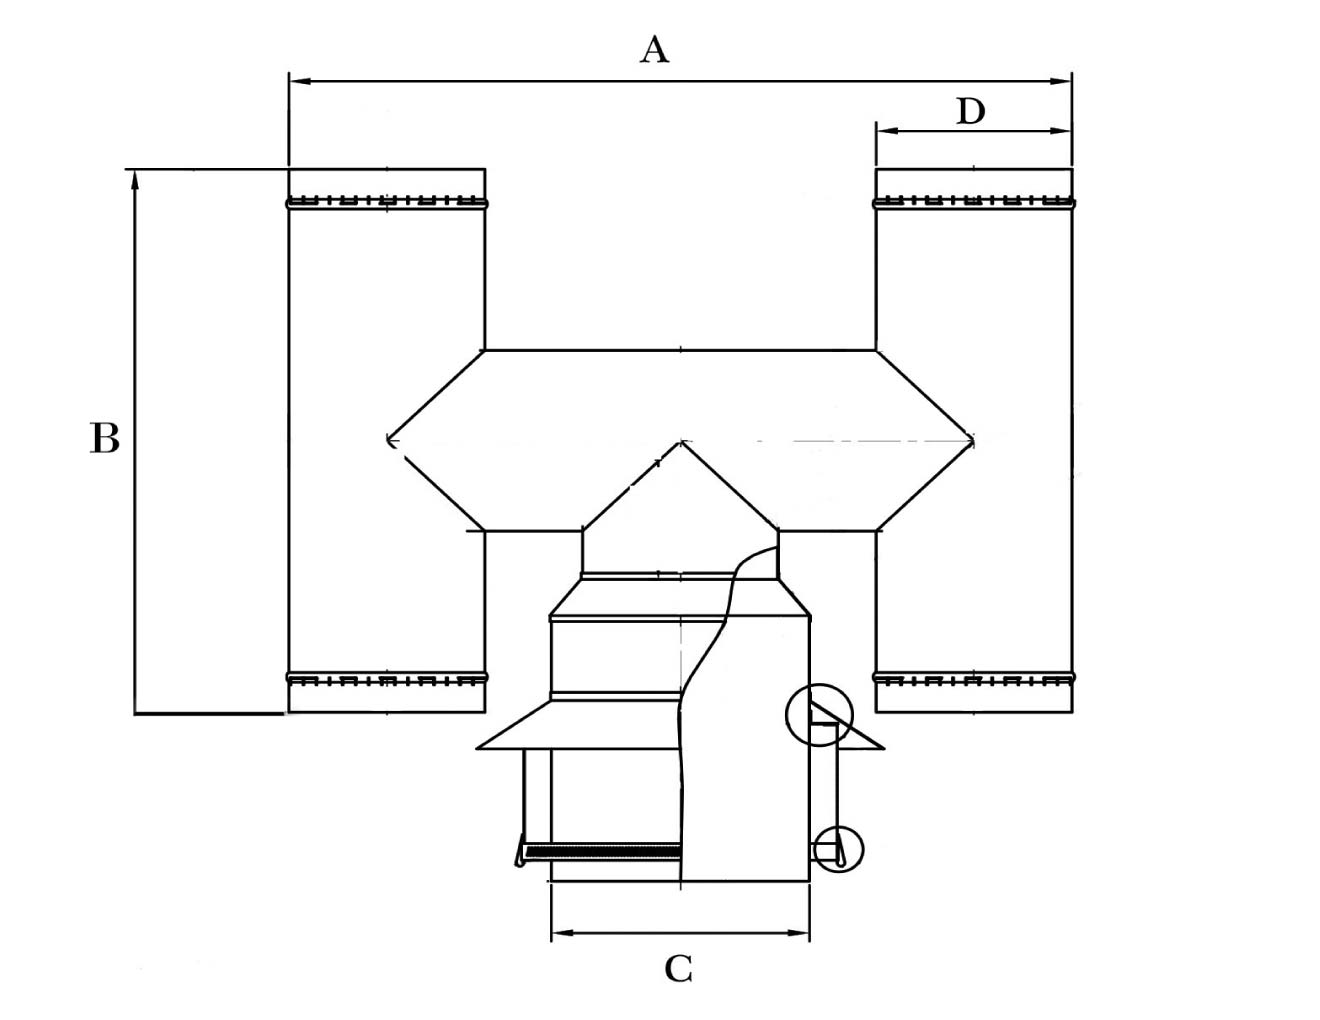 hight resolution of h cowl for 9 inch clay chimney pot diagram